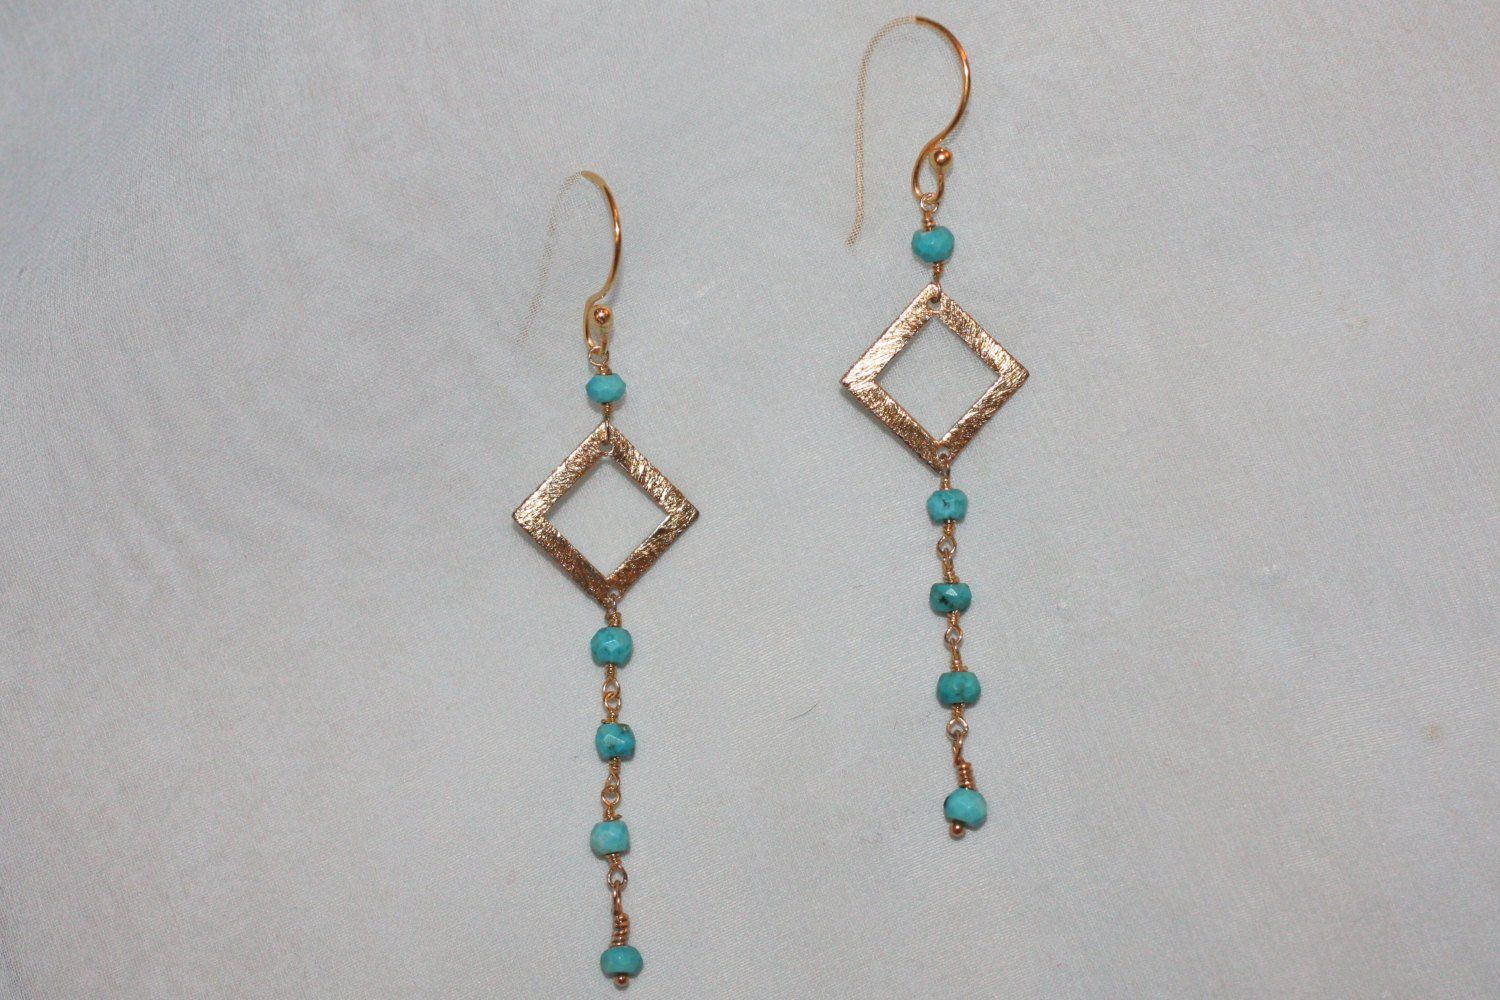 Modern Dangling Turquoise Gem & Gold Square Design Earring is part of Turquoise jewelry outfit, Turquoise jewelry boho, Turquoise stone jewelry, Turquoise jewelry, Special jewelry, Modern earrings - 2 inches hanging length from hook Materials Stabilized Turquoise gemstones, 18kt gold vermeil chain, Earring Hook 22kt gold vermeil Clasp Lobster Claw 18kt gold vermeil Packaging Organza bag in gift box with cotton and ribbon